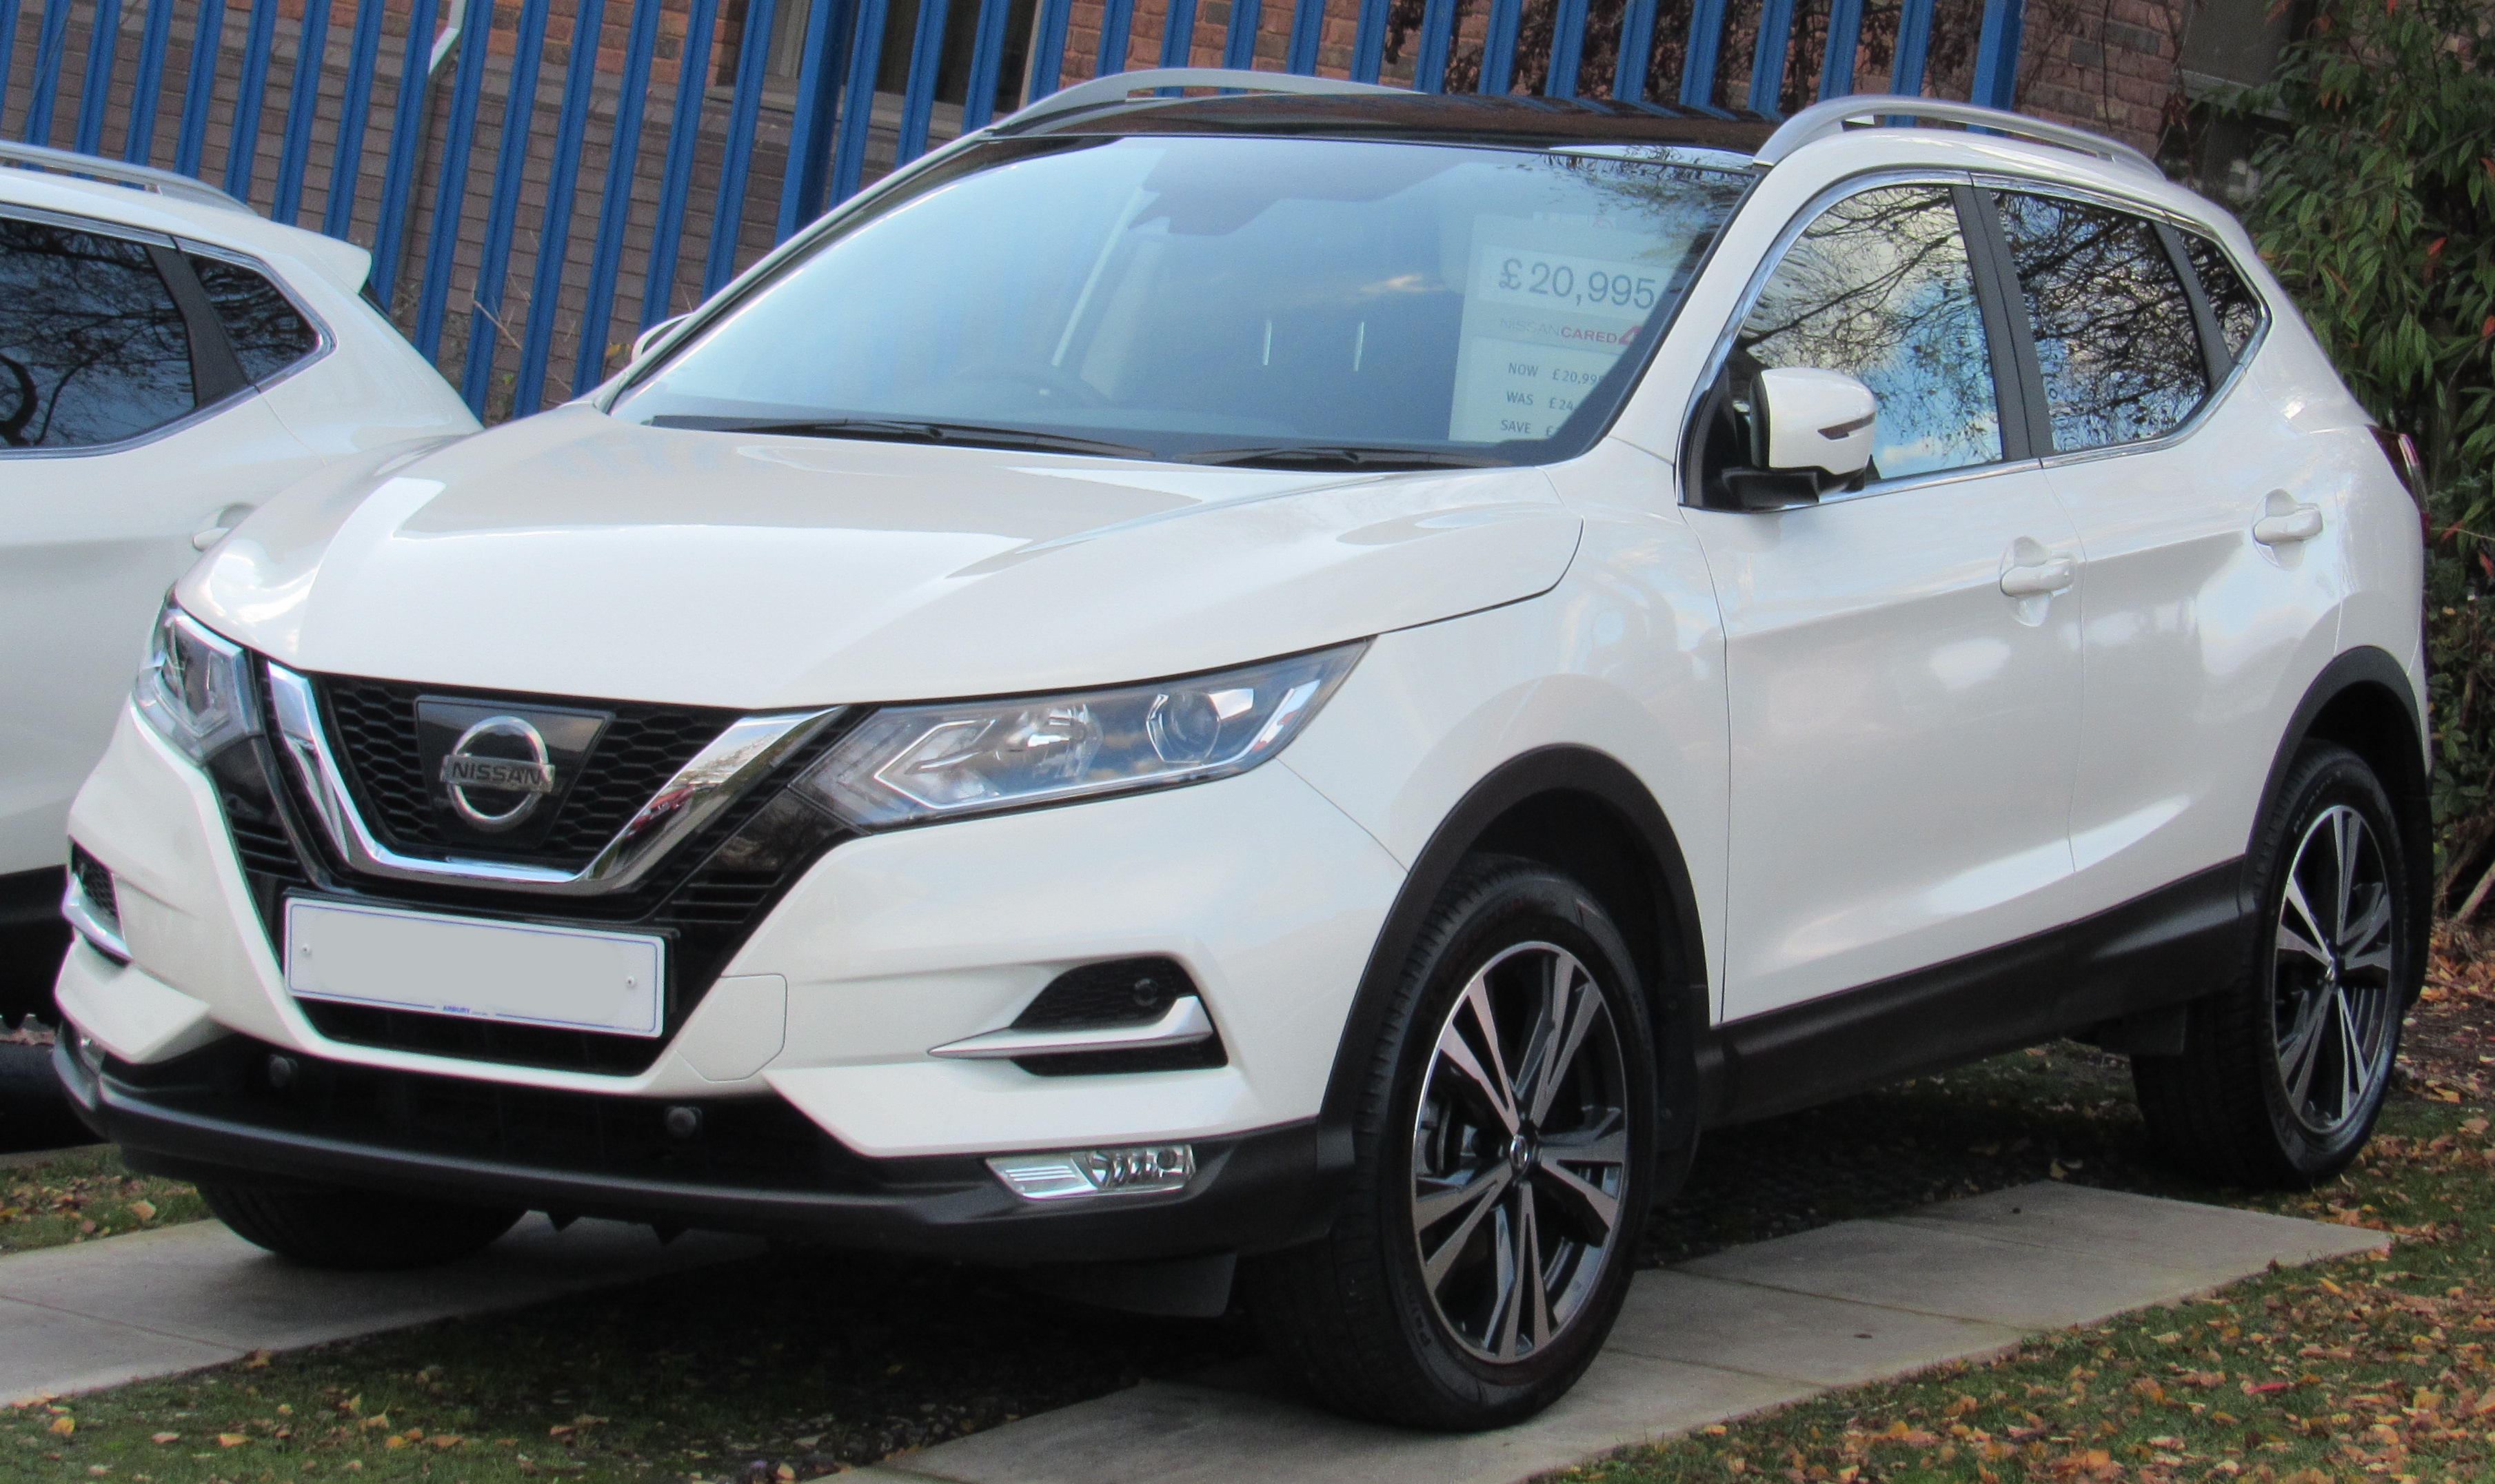 Illustration : NISSAN - QASHQAI 1.6 DCI 130 CONNECT EDITION